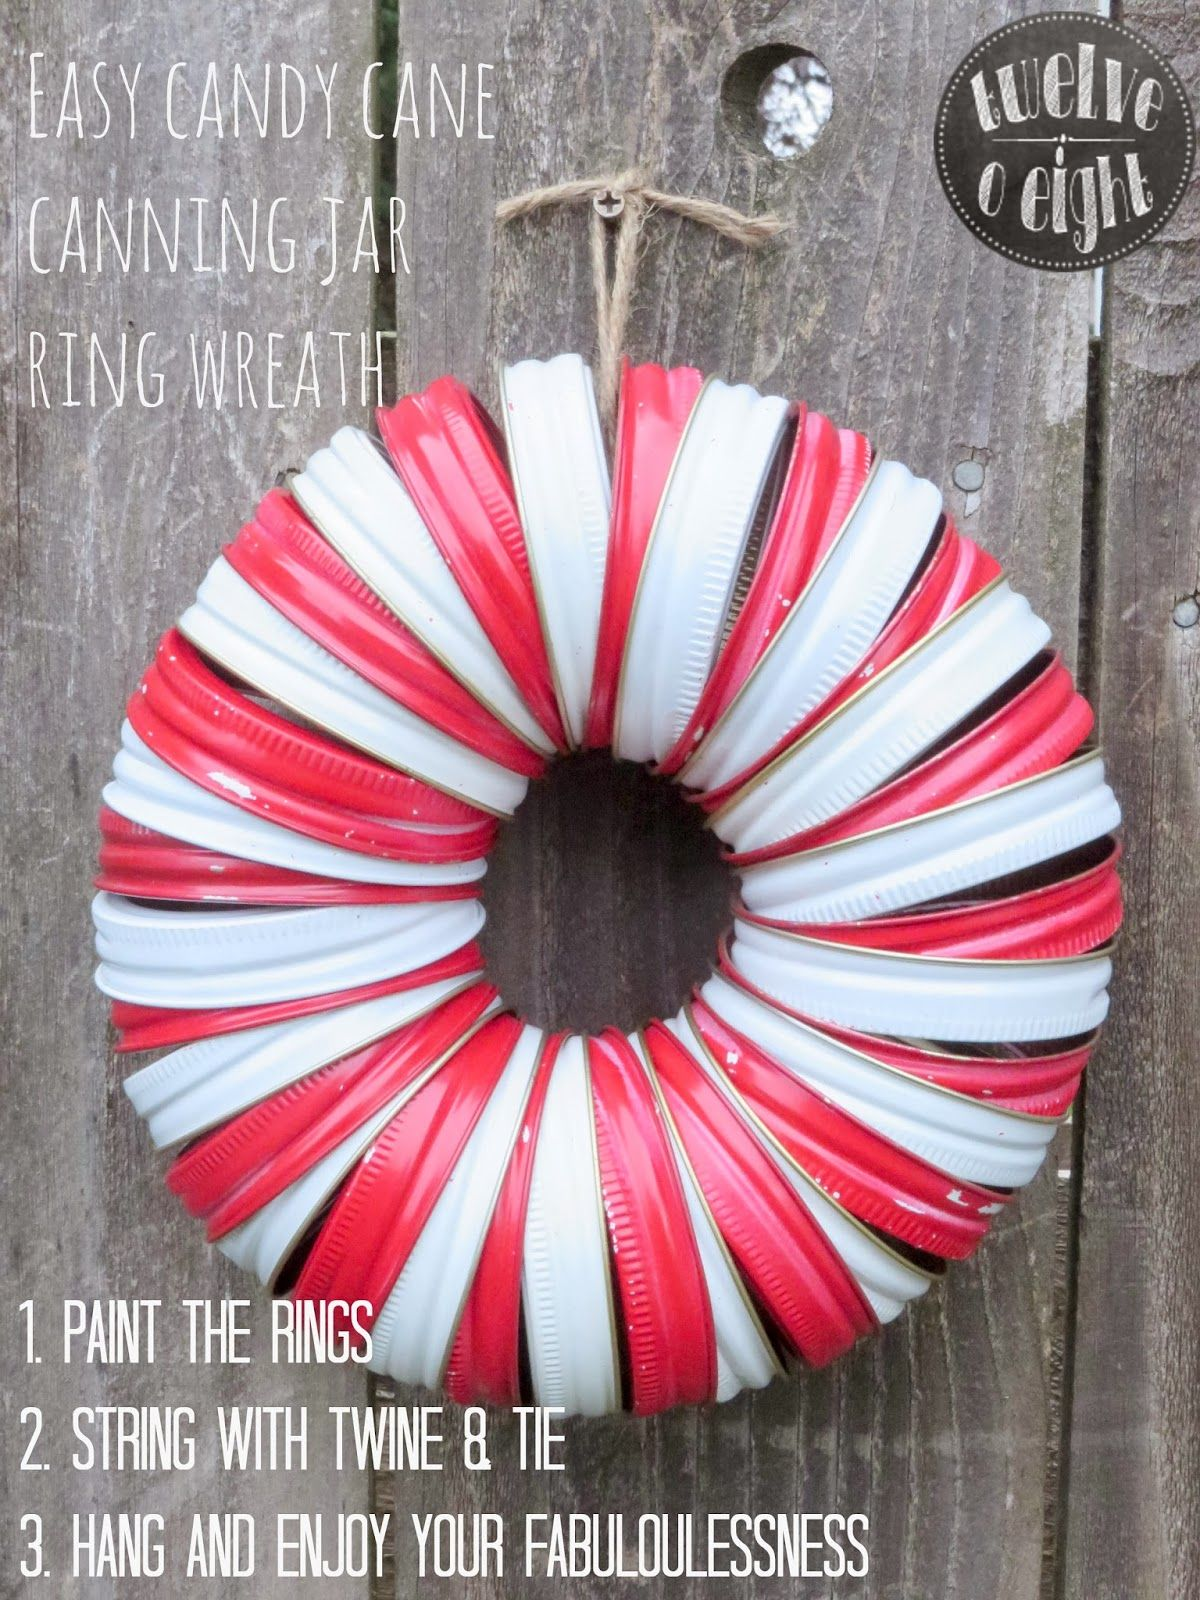 67 DIY Christmas Wreaths - How to Make a Holiday Wreath Craft